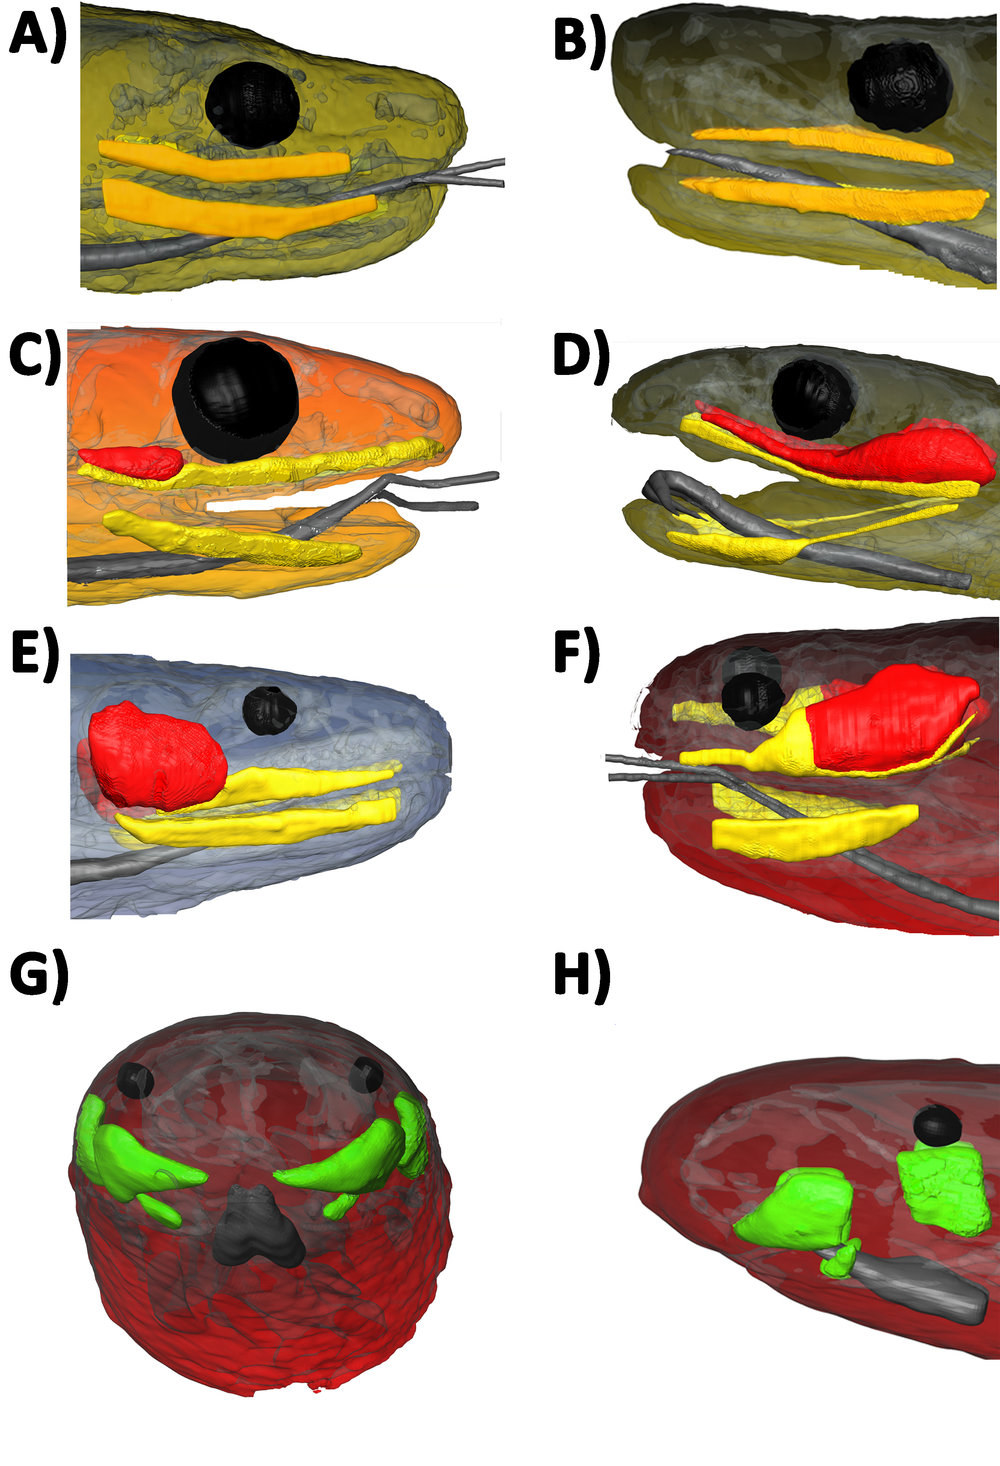 "Magnetic resonance imaging (MRI) of snake oral glands. Orange = Mucoid labial glands (no venom gland); yellow = mucoid labial glands (in presence of venom gland); red = venom gland; green = ""scolecophidian"" oral glands of unknown homology (see text for discussion). A) Eunectes notaeus, B) Python regius with the mandibular glands exceeding the size of the maxillary as part of the exaptation for lubrication of feathered and furred prey, C) Pantherophis guttatus, D) Dendroaspis polylepis, E Cerberus rynchops, F) Helicops leopardinus G/H Anilios guentheri. Click here to download the associated paper"